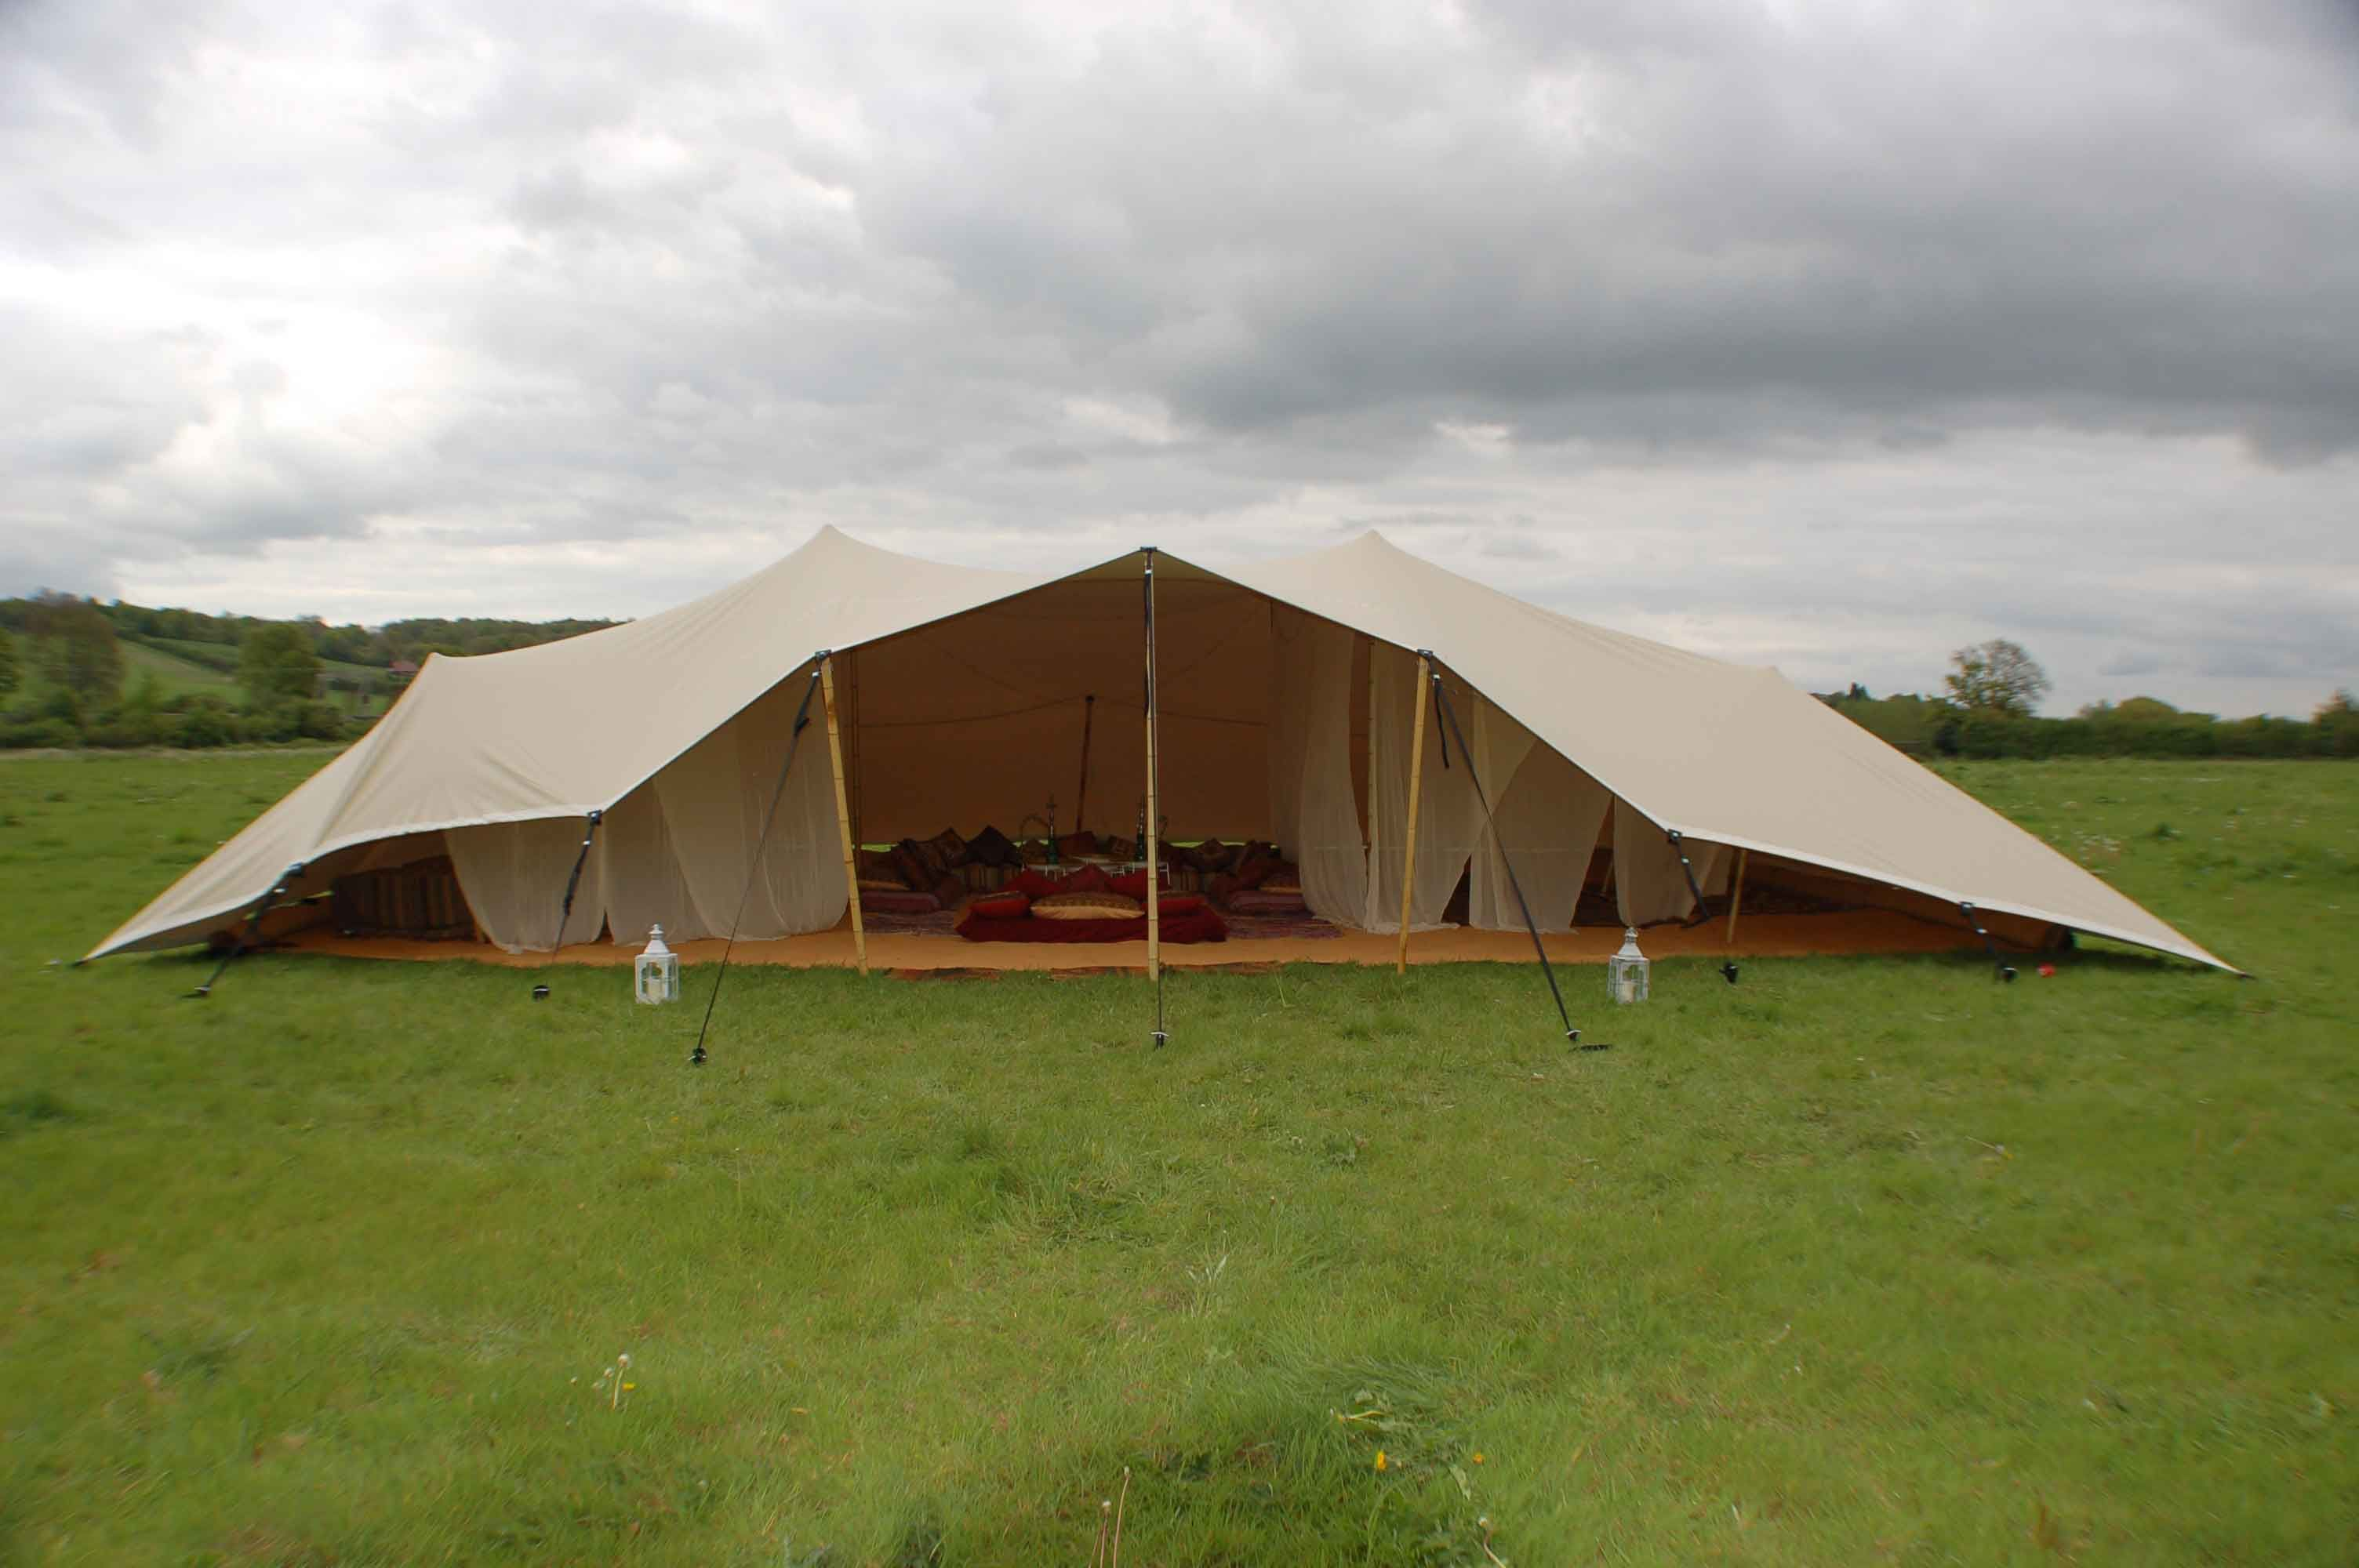 Yurt Tipi Bell tent hire from FM Tents Wedding party and event & Yurt Tipi Bell tent hire from FM Tents: Wedding party and event ...